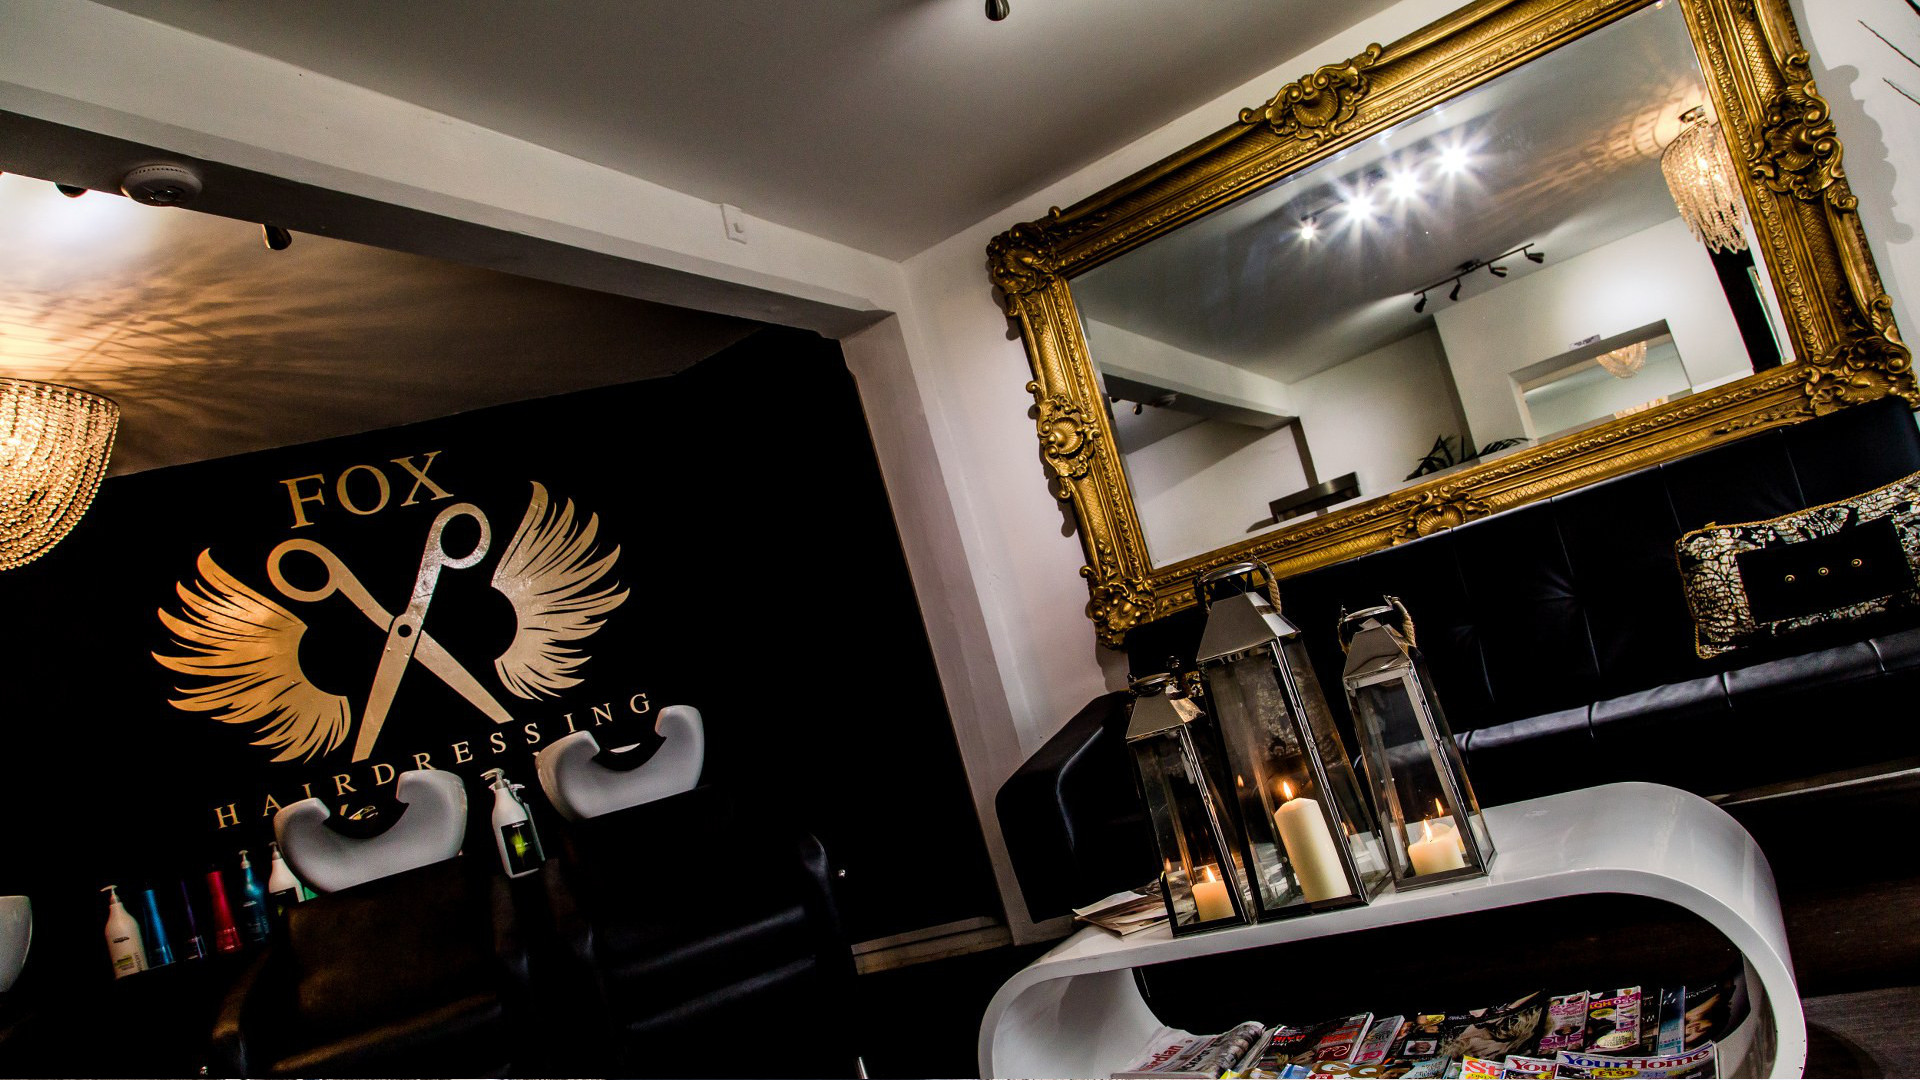 Fox Hairdressing - Hair wash and waiting